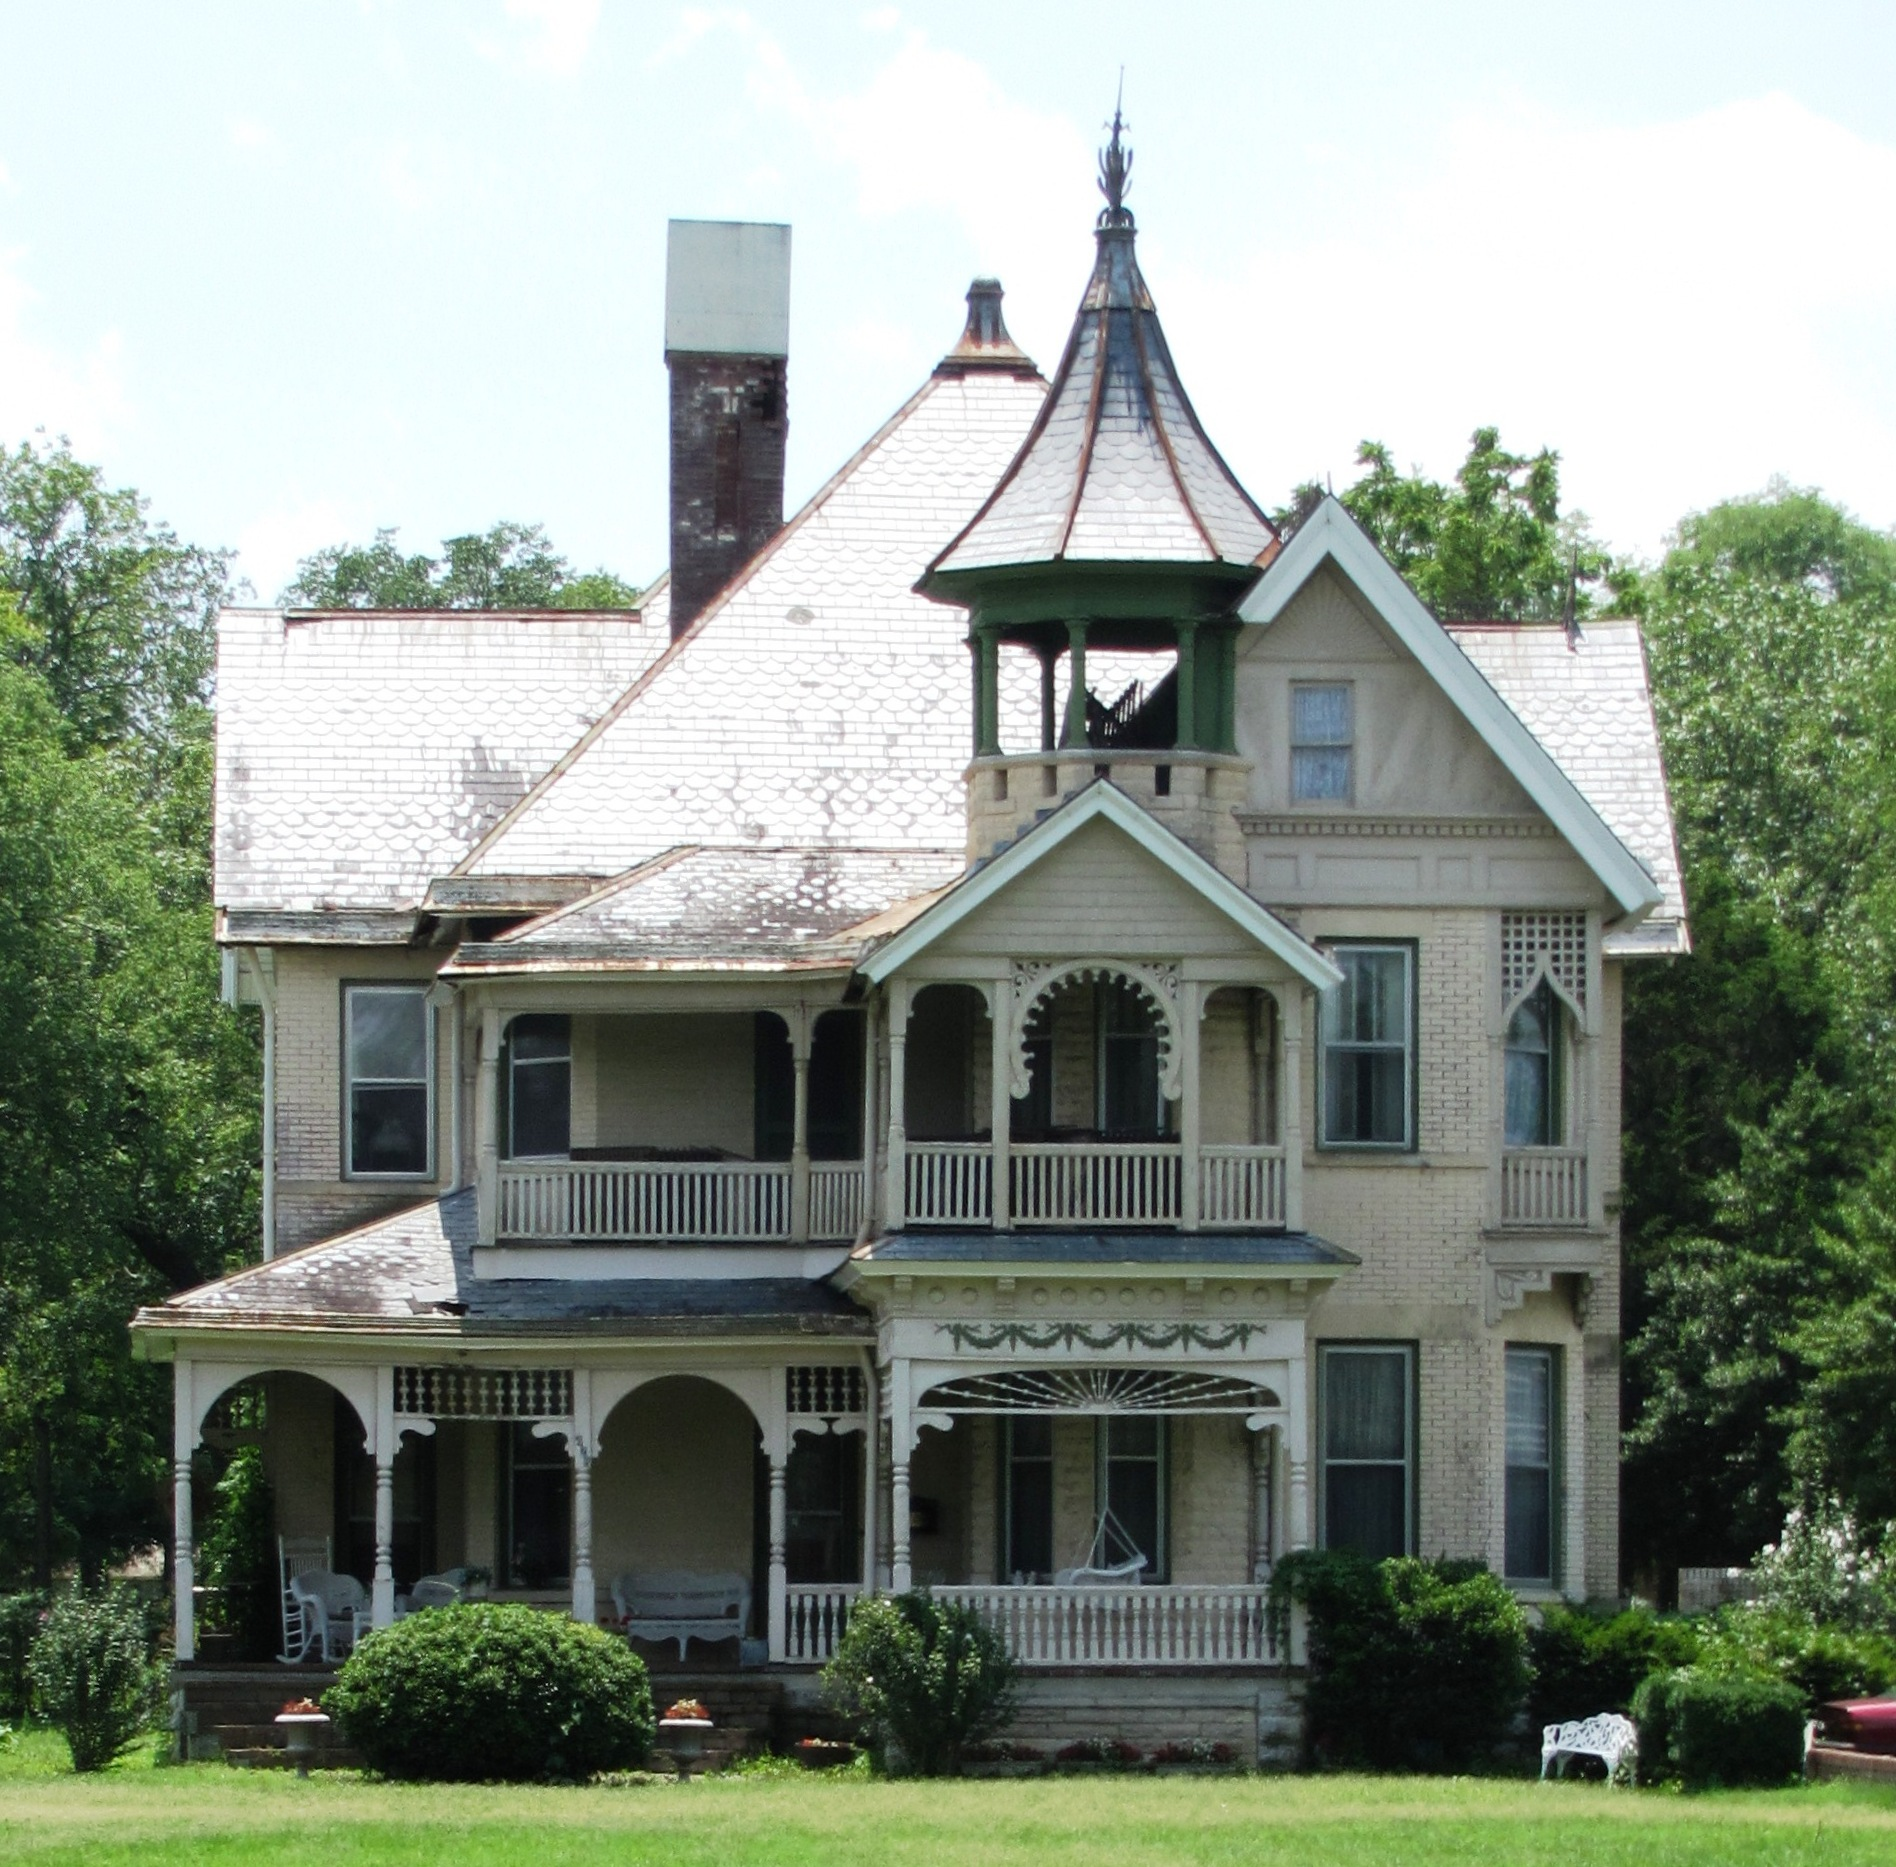 Rocky Hill Castle Is A Historic Plantation Home In Courtland Alabama in addition 2810801521 moreover Staunton Virginia Day Trip additionally Luxury Mansion additionally Small Queen Anne Victorian House Plans. on virginia farmhouse architecture